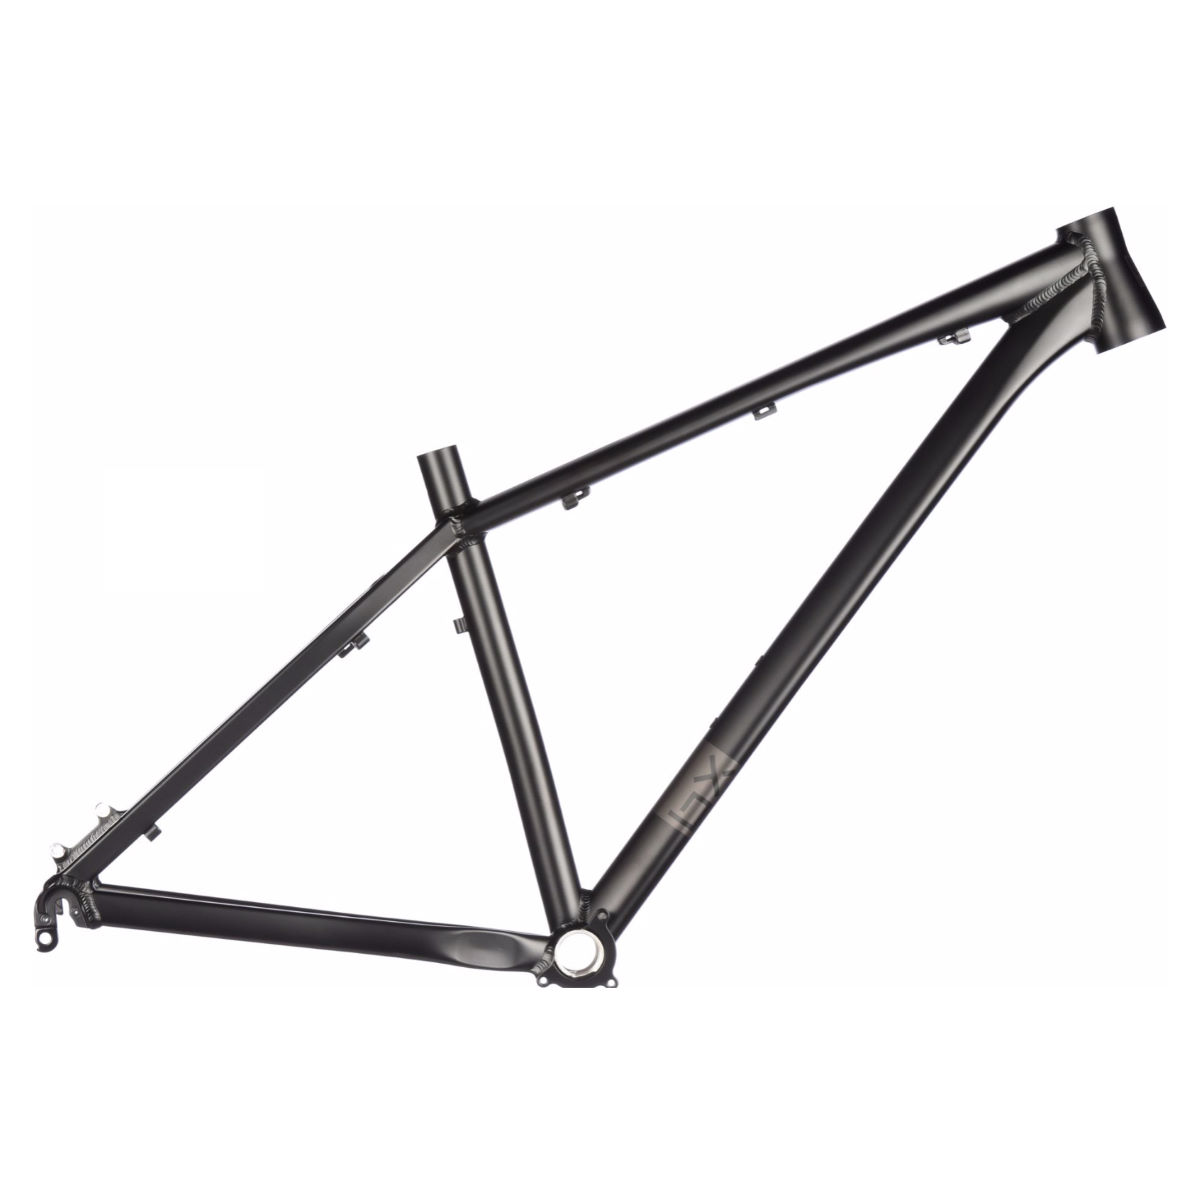 "Brand-X Brand-X HT-01 (27.5"") Hardtail Mountain Bike Frame   Hard Tail Mountain Bike Frames"